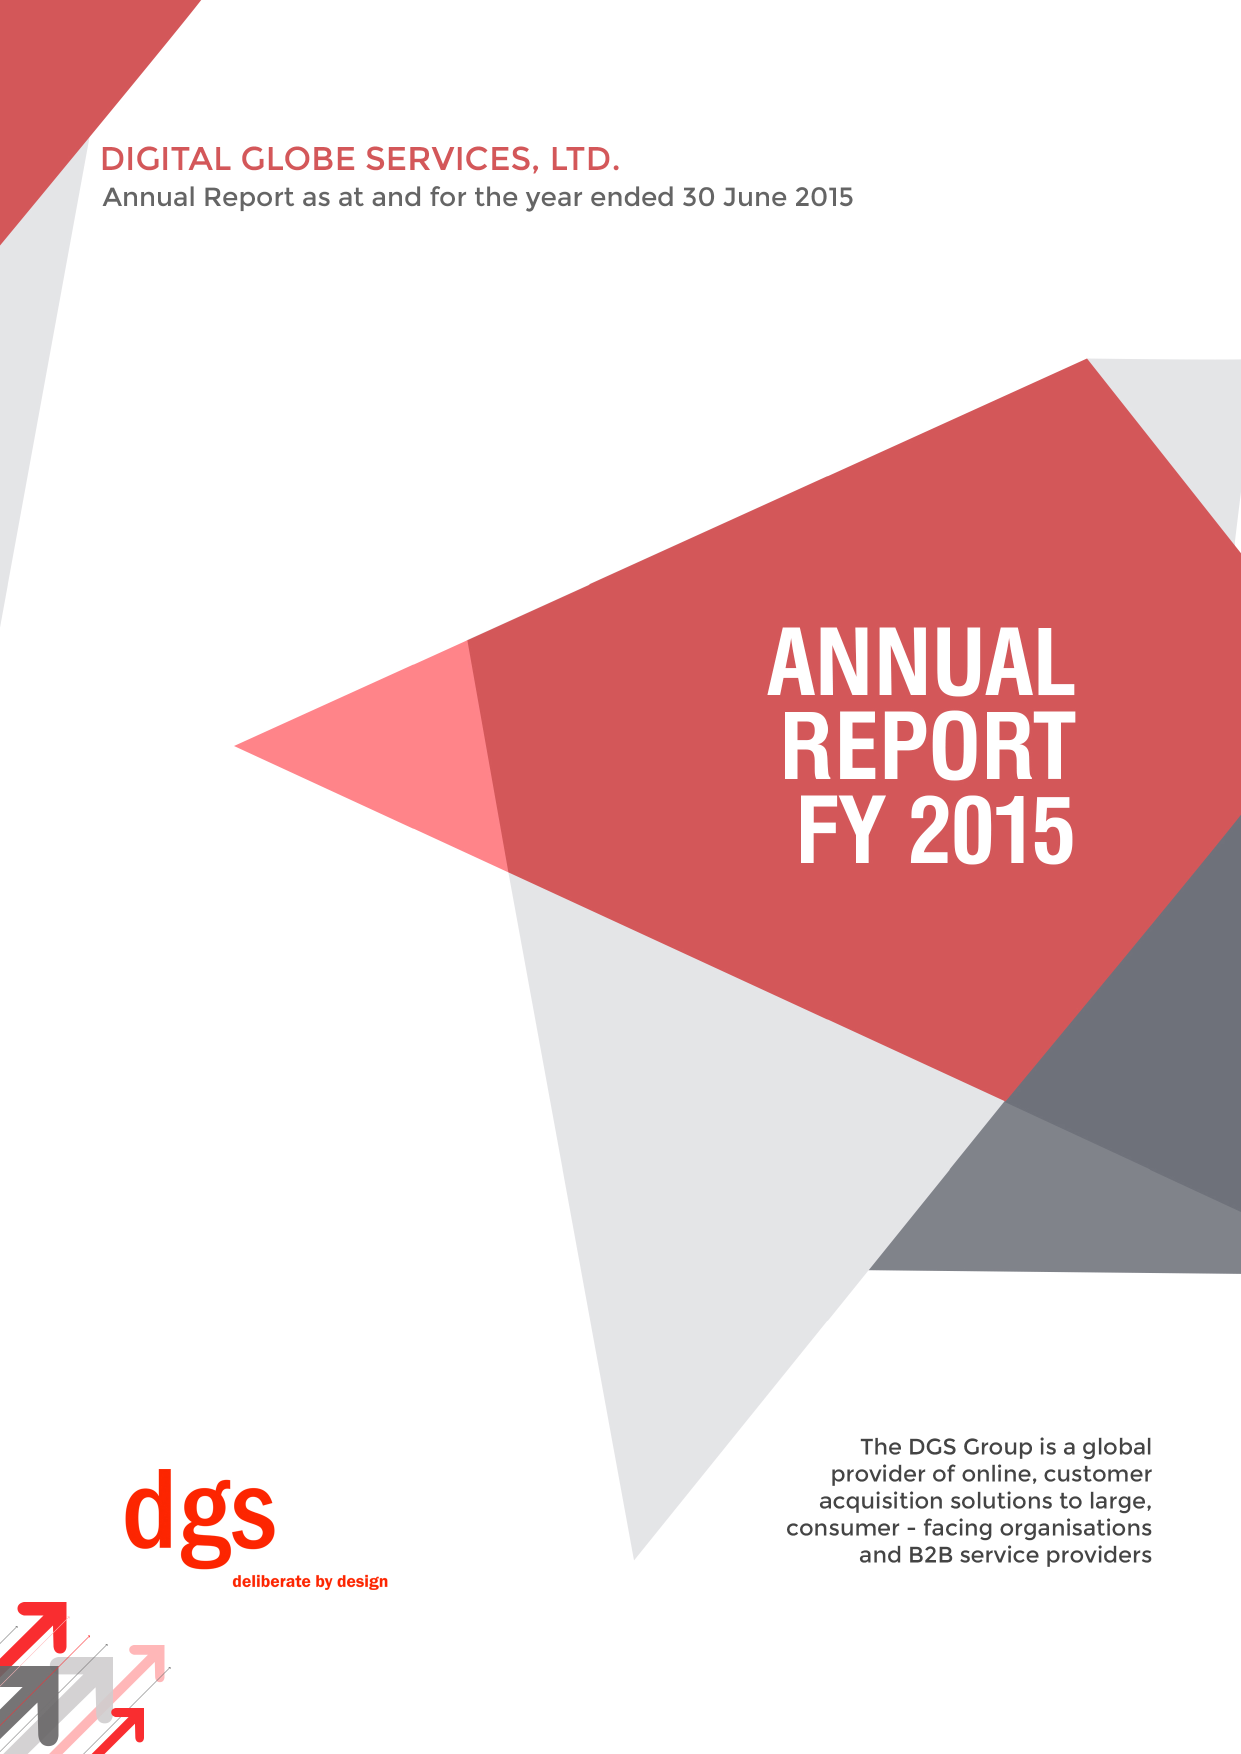 Digital Globe Services annual report 2015